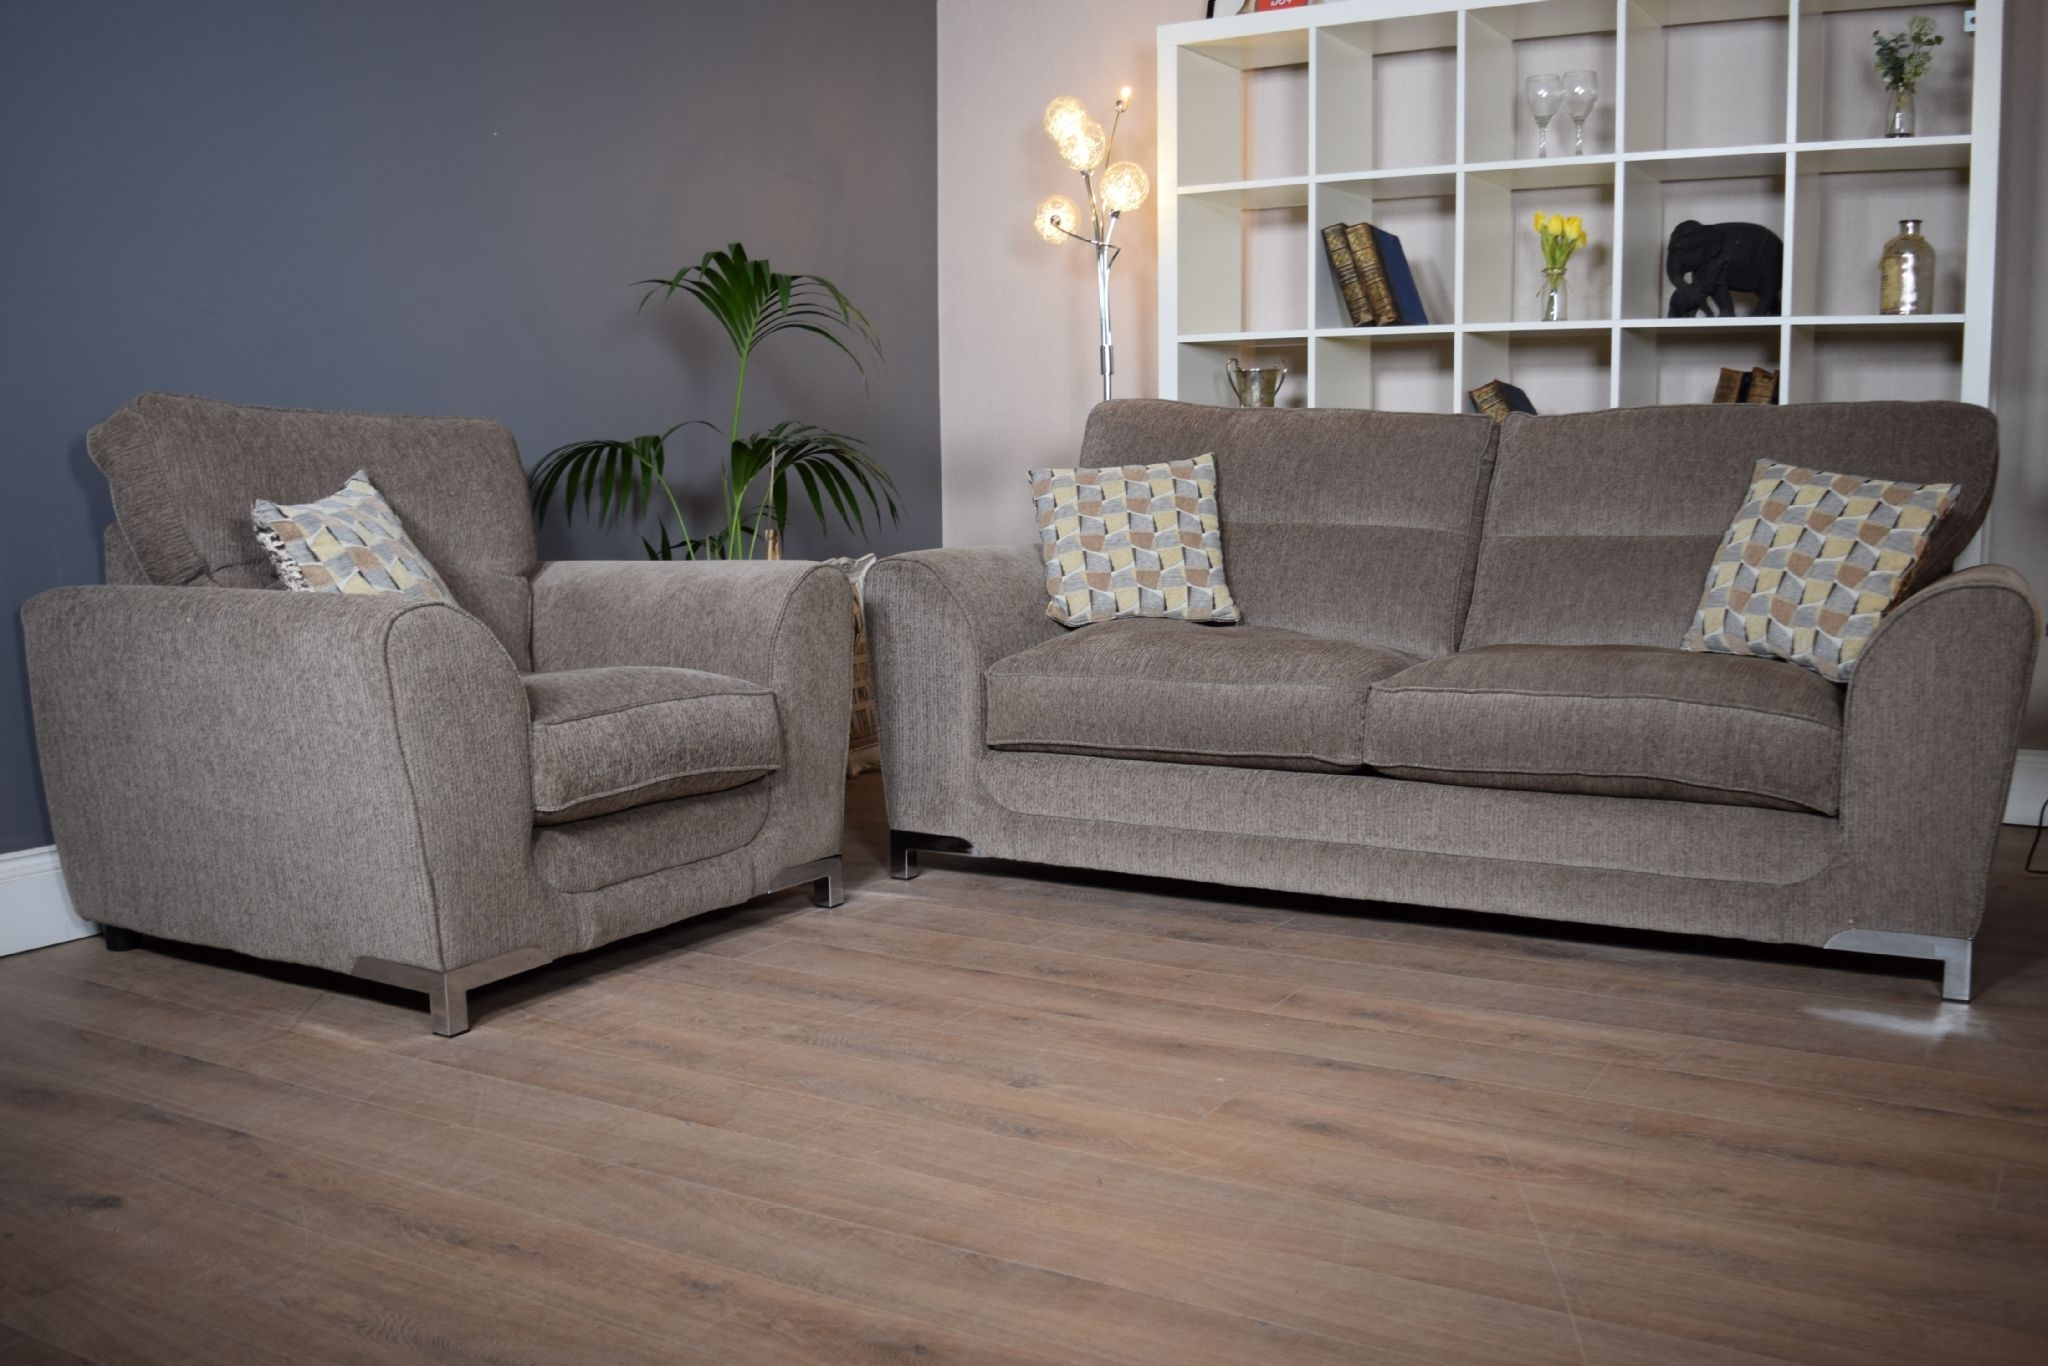 Set Nikki 3 Seater Sofa & Cuddle Chair Suite Set – Mocha Grey Inside Most Recent 3 Seater Sofas And Cuddle Chairs (View 11 of 15)